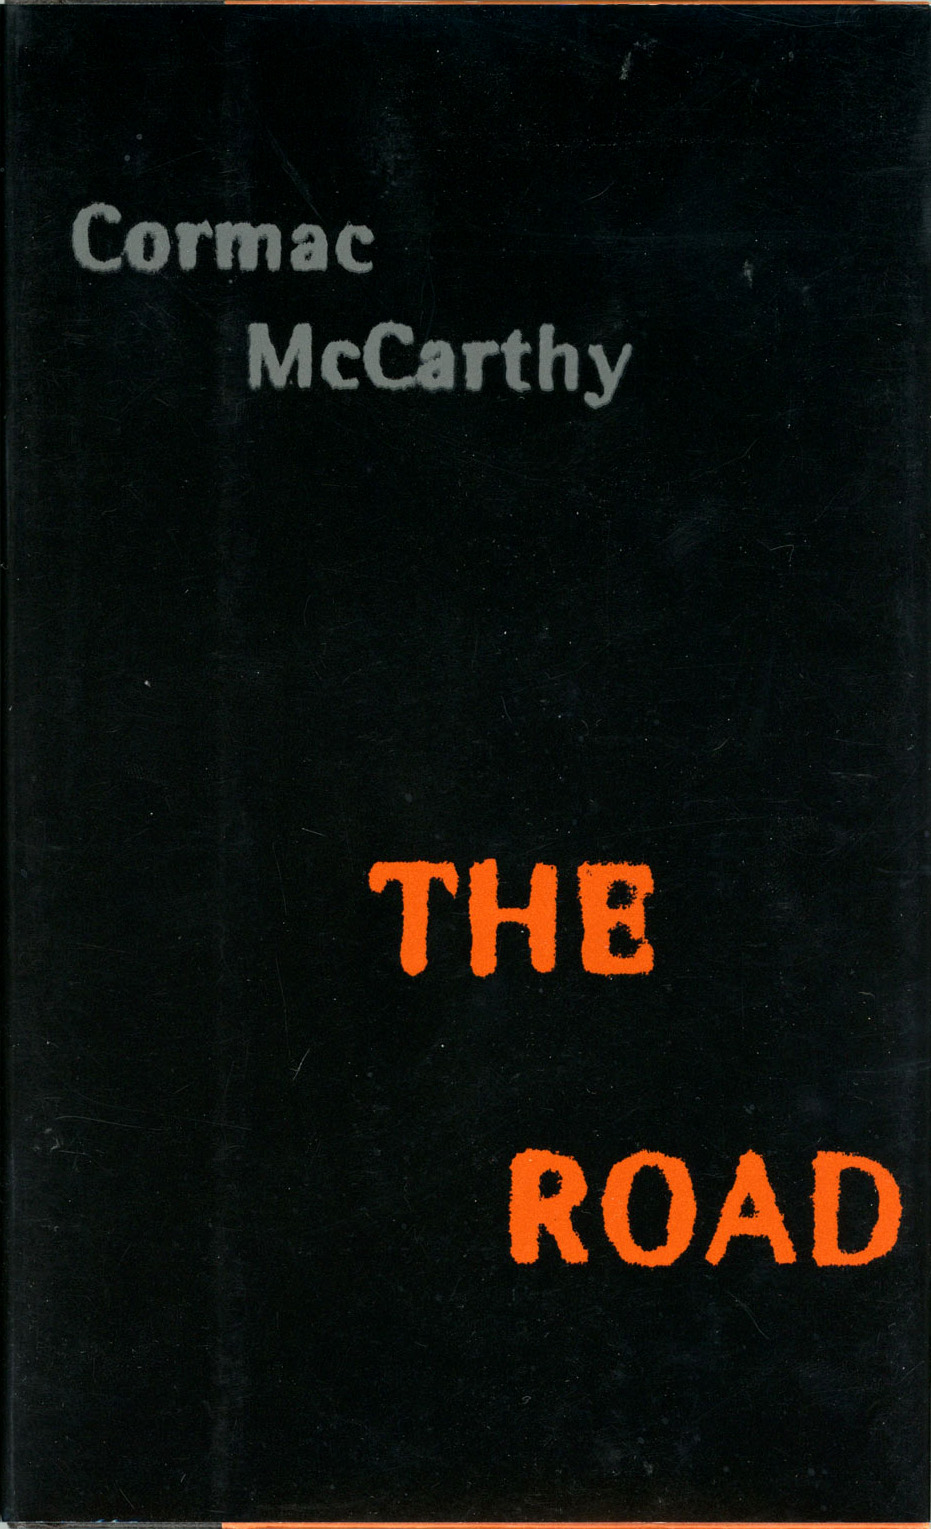 "the tragedy of cormac mccarthys post apocalyptic novel the road Post-apocalyptic scenarios are rarely positive – take, to name only two examples, the classic novel ""the road"" by cormac mccarthy and the blockbuster young adult series ""the hunger games"" but reviewers are noting that mandel's book embraces a different view while still depicting how difficult living."